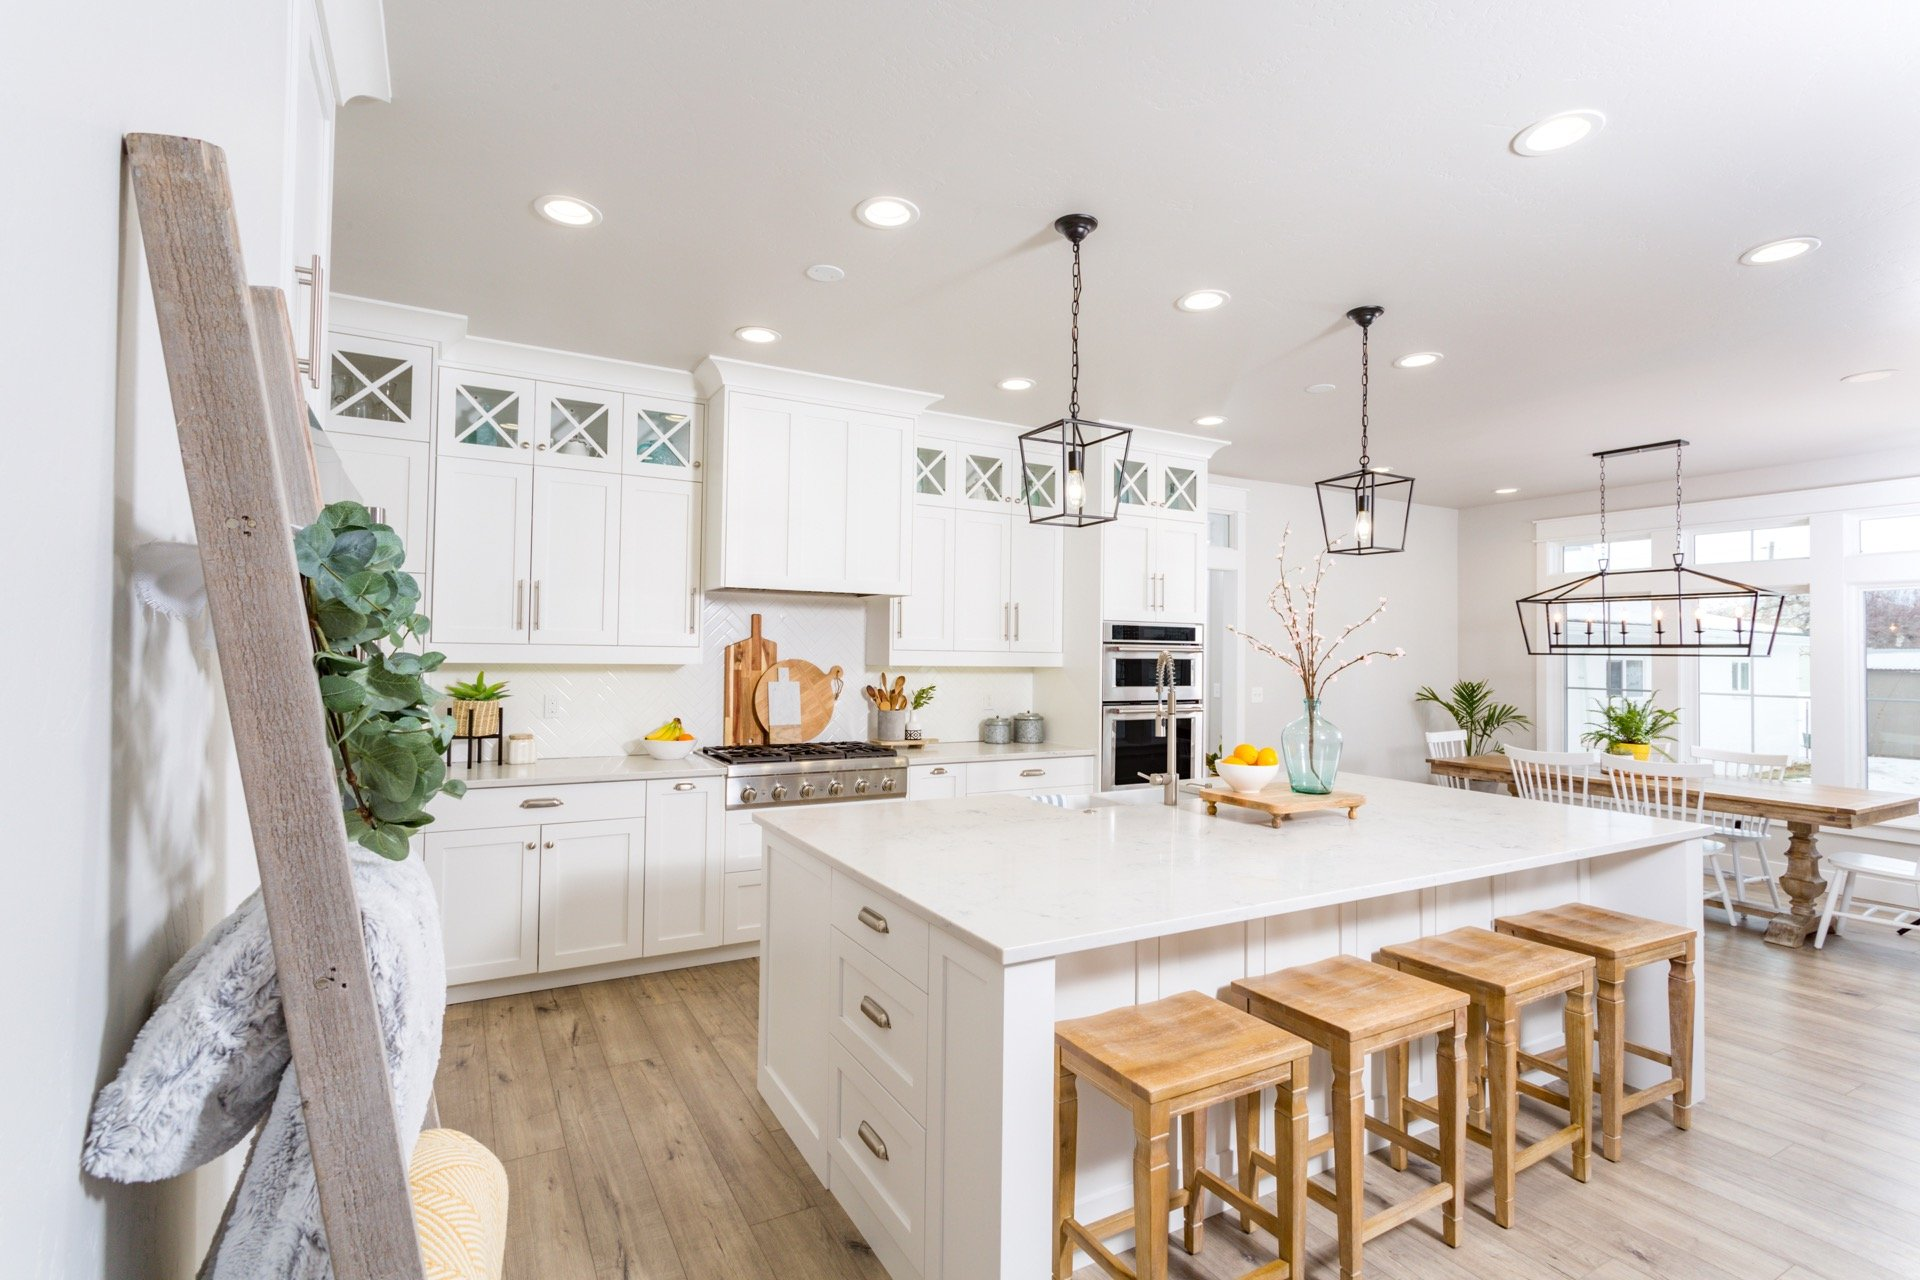 New kitchen with island and modern farm style